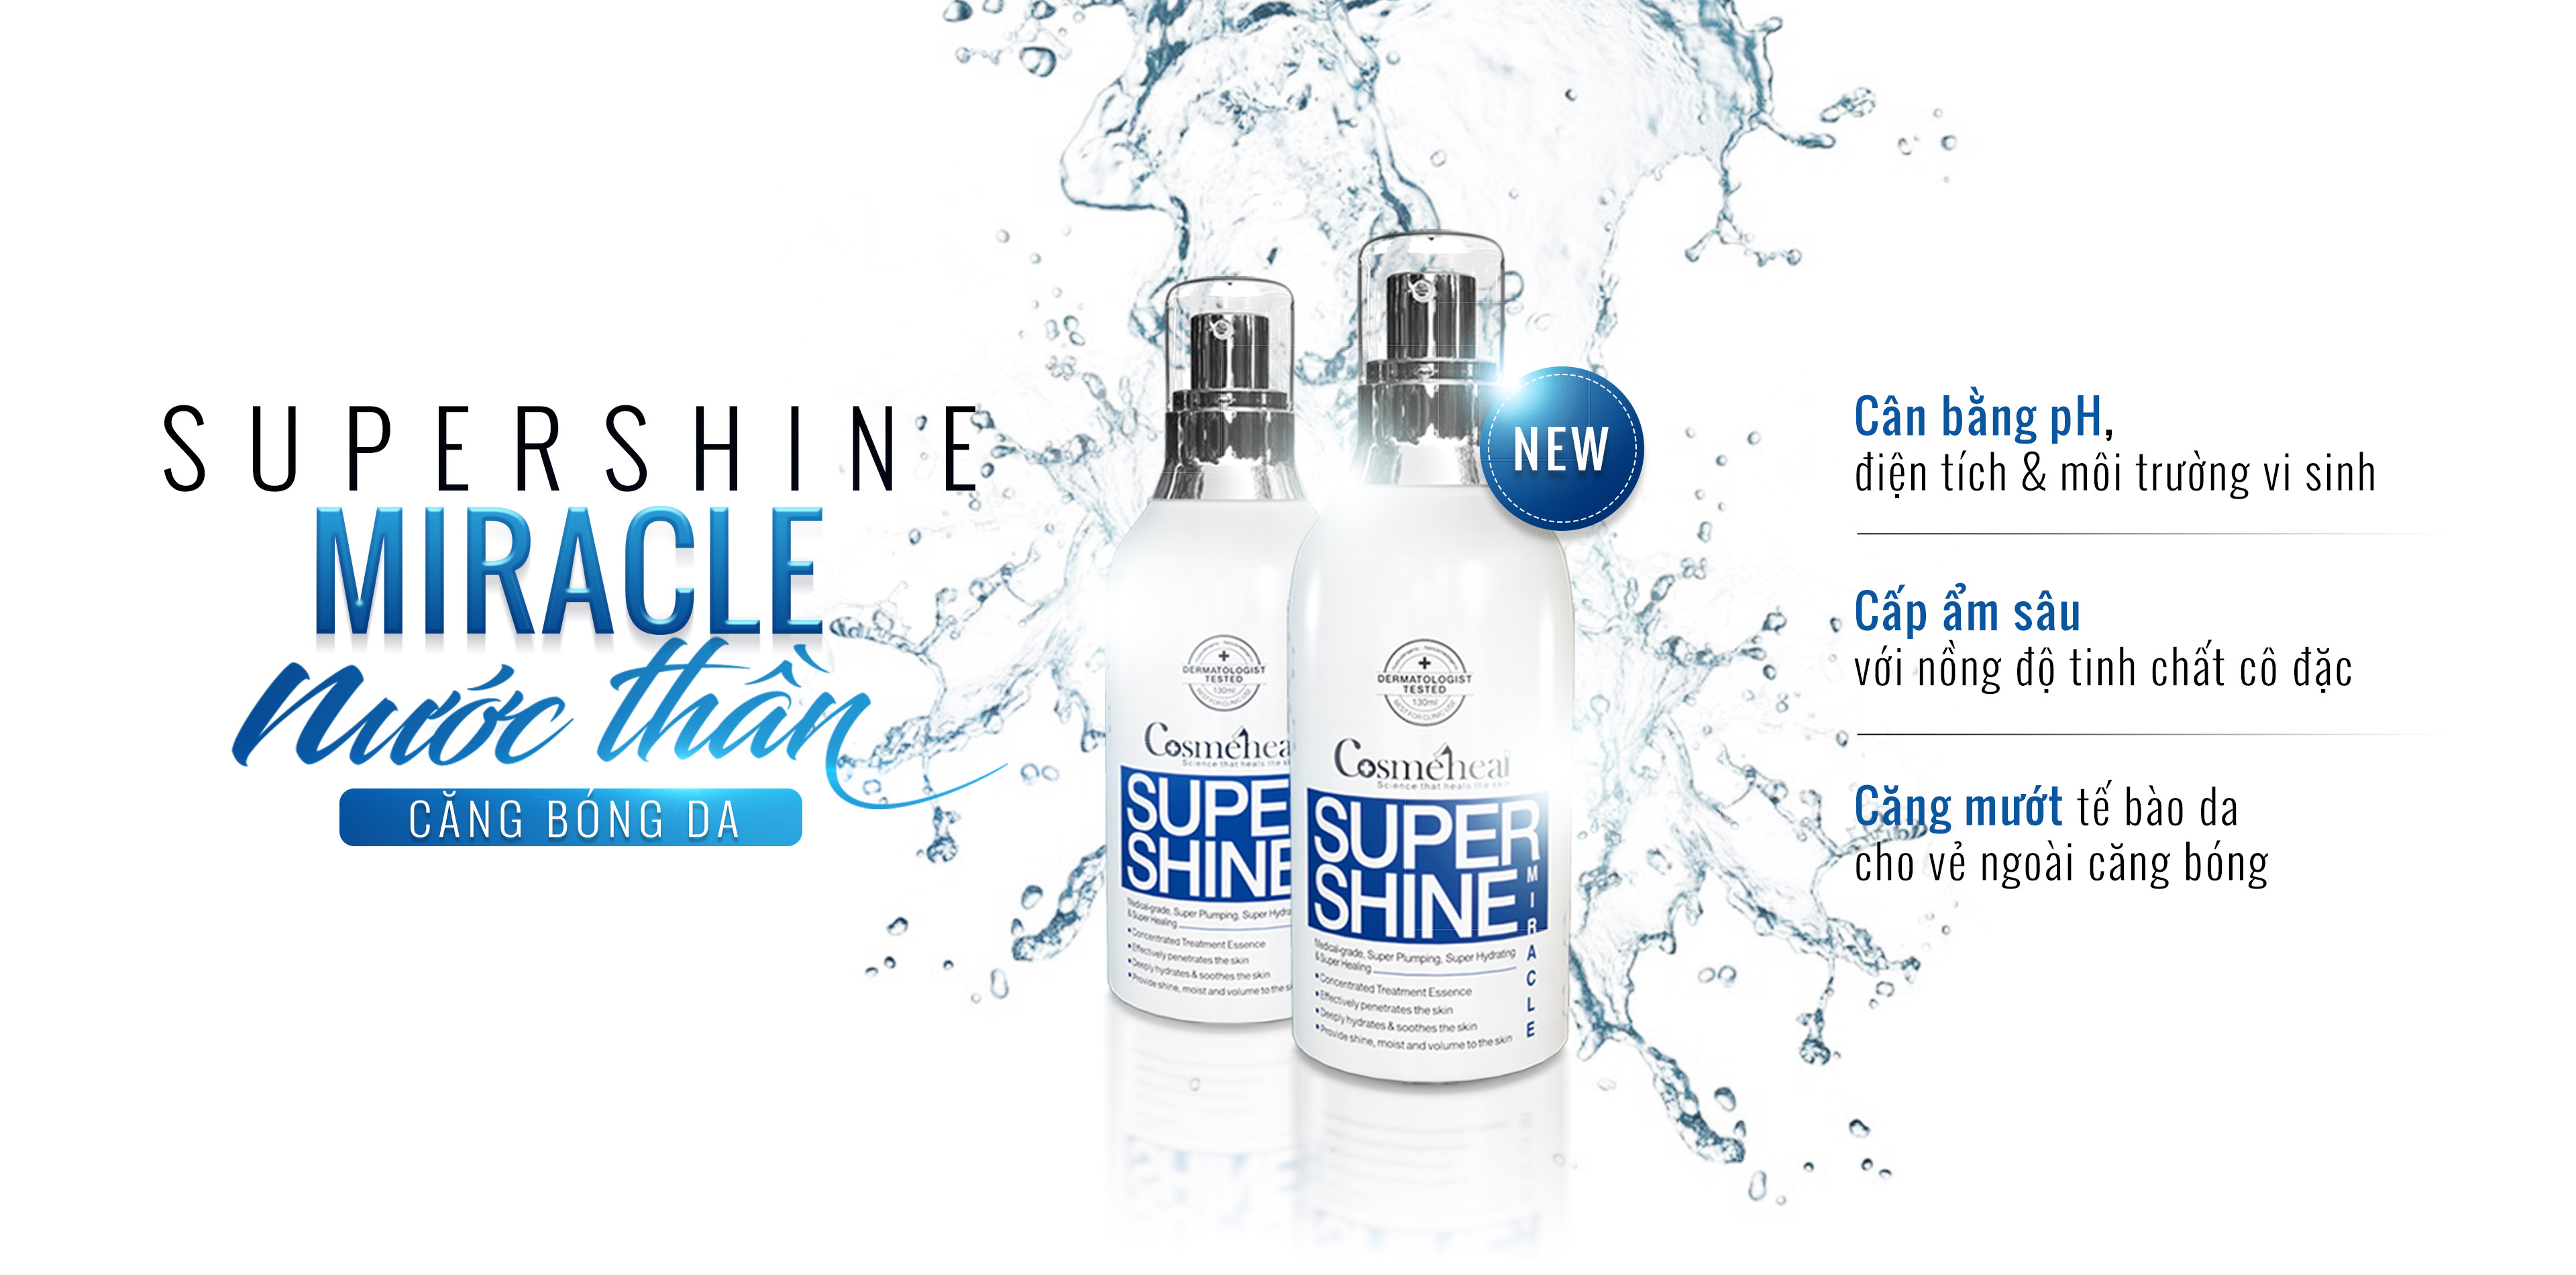 NuocThan_Miracle_SuperShine